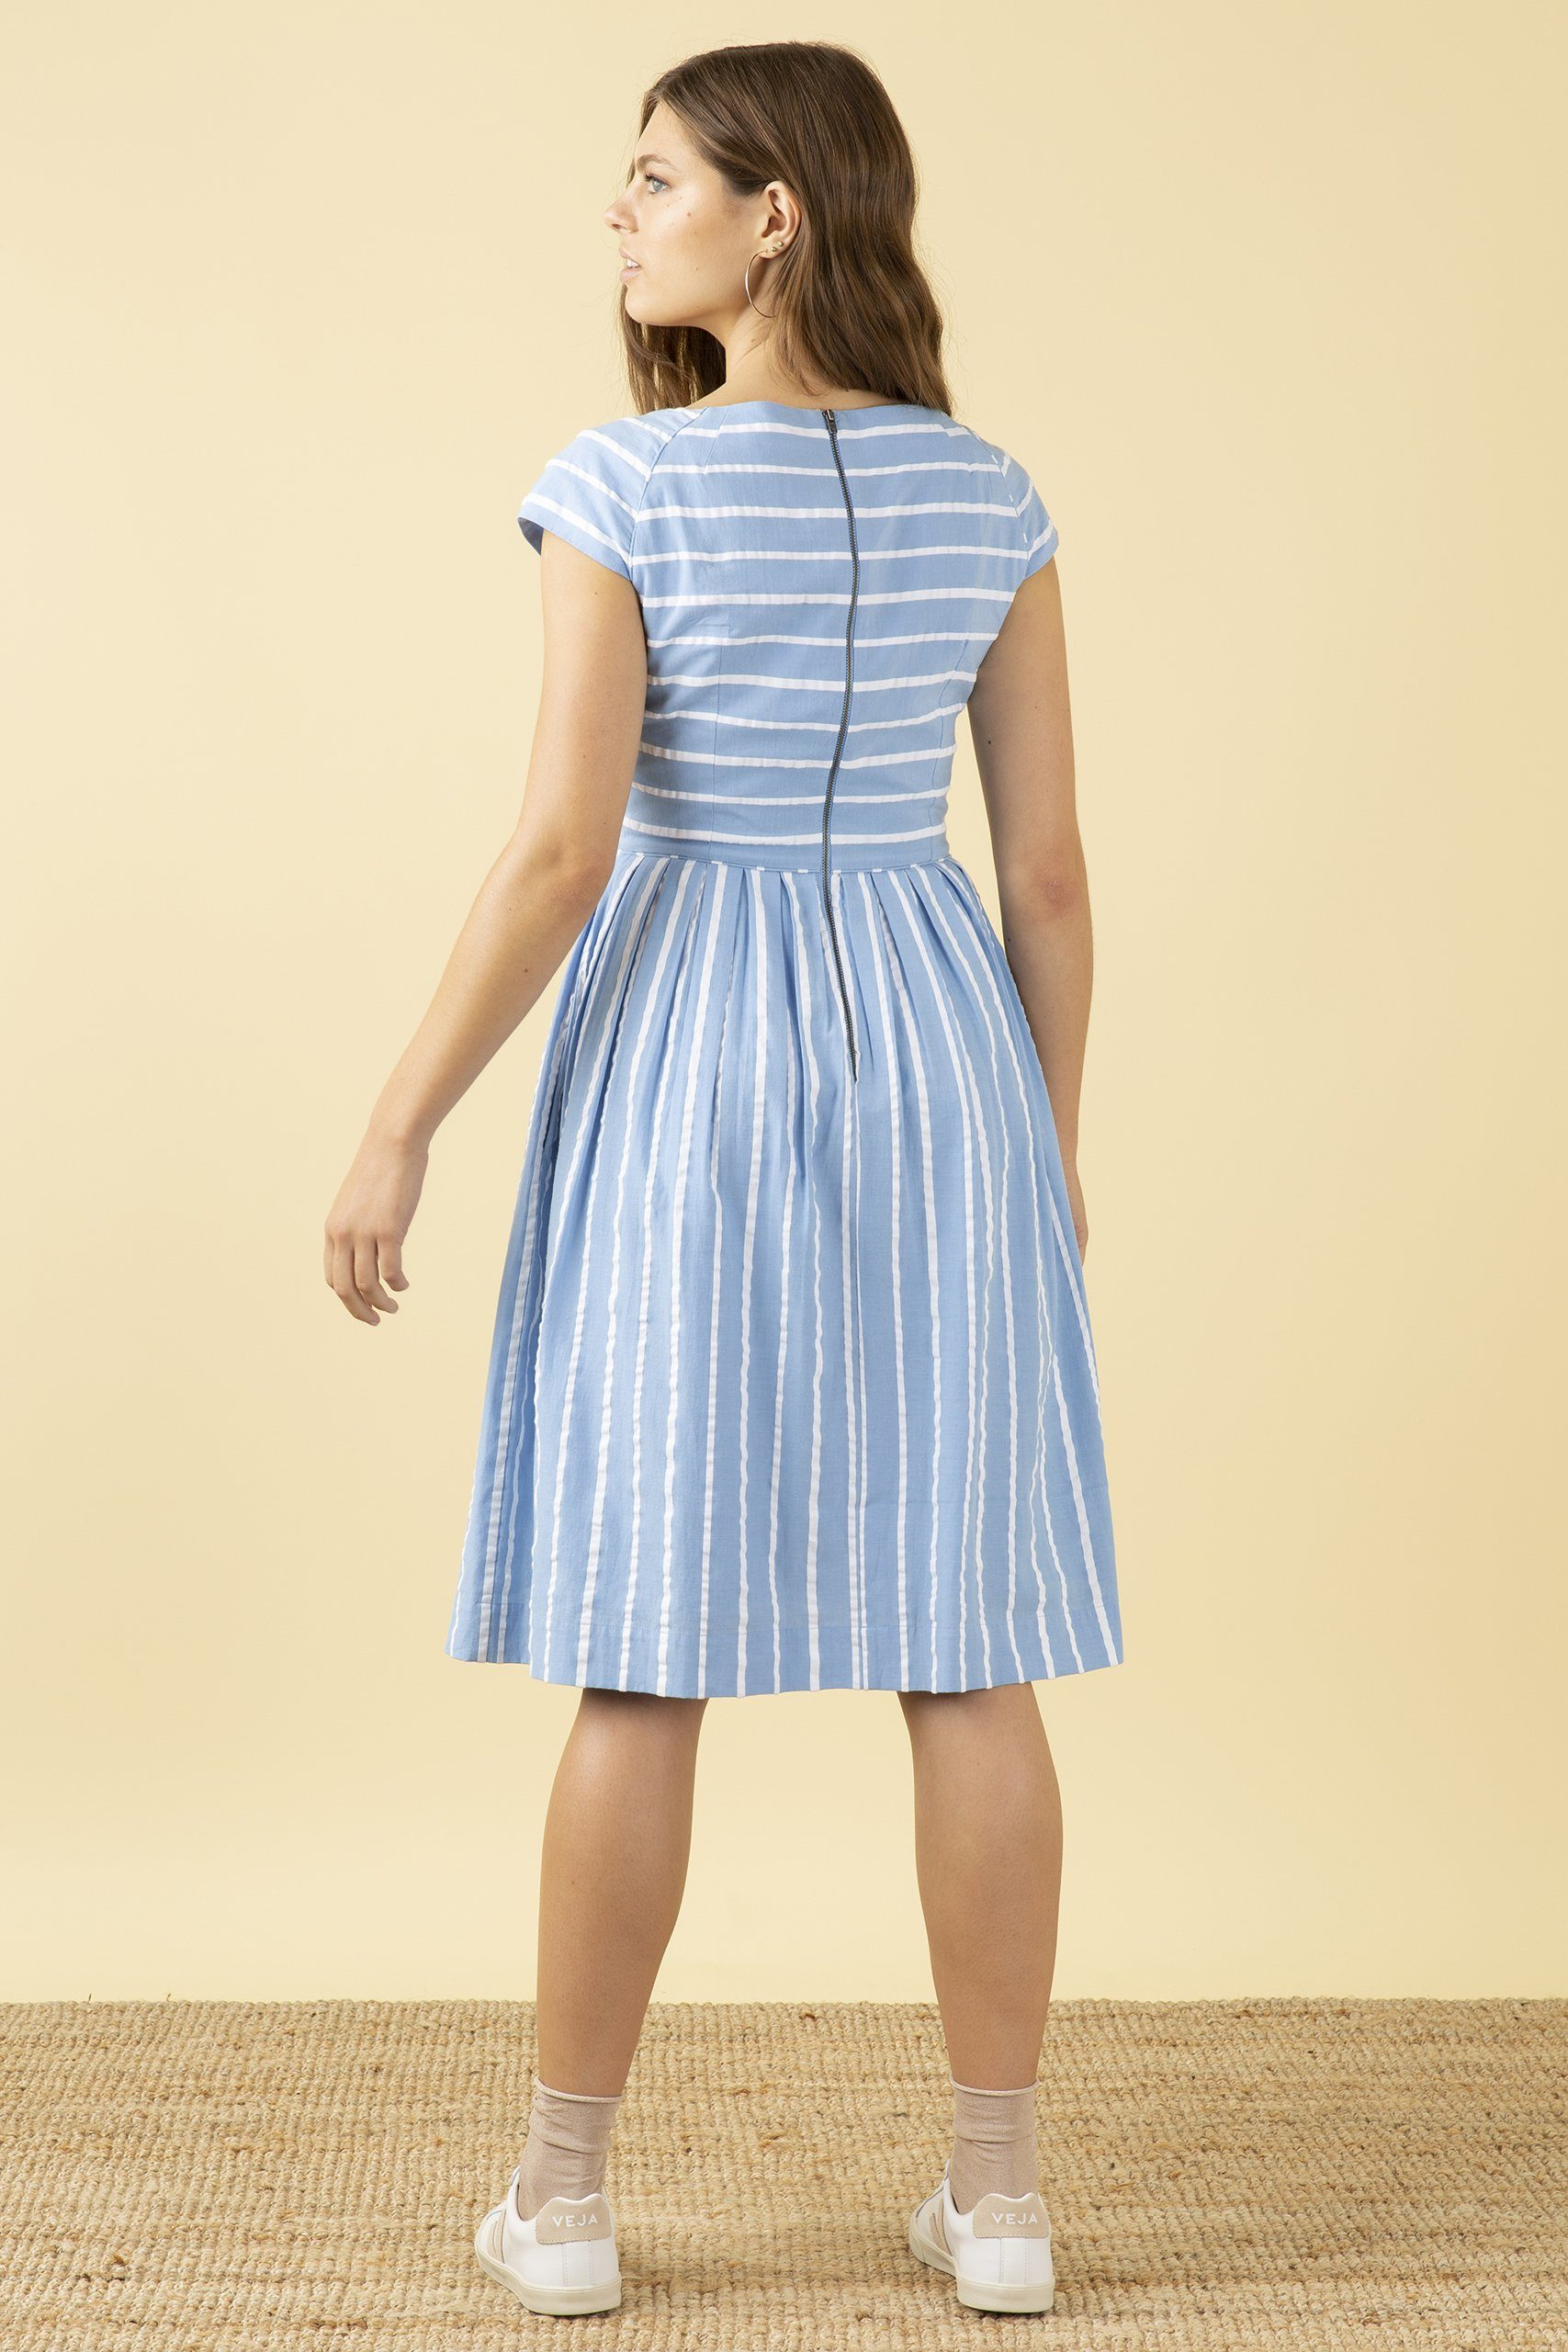 Emily & Fin Claudia Seaspray Stripe Dress - BouChic